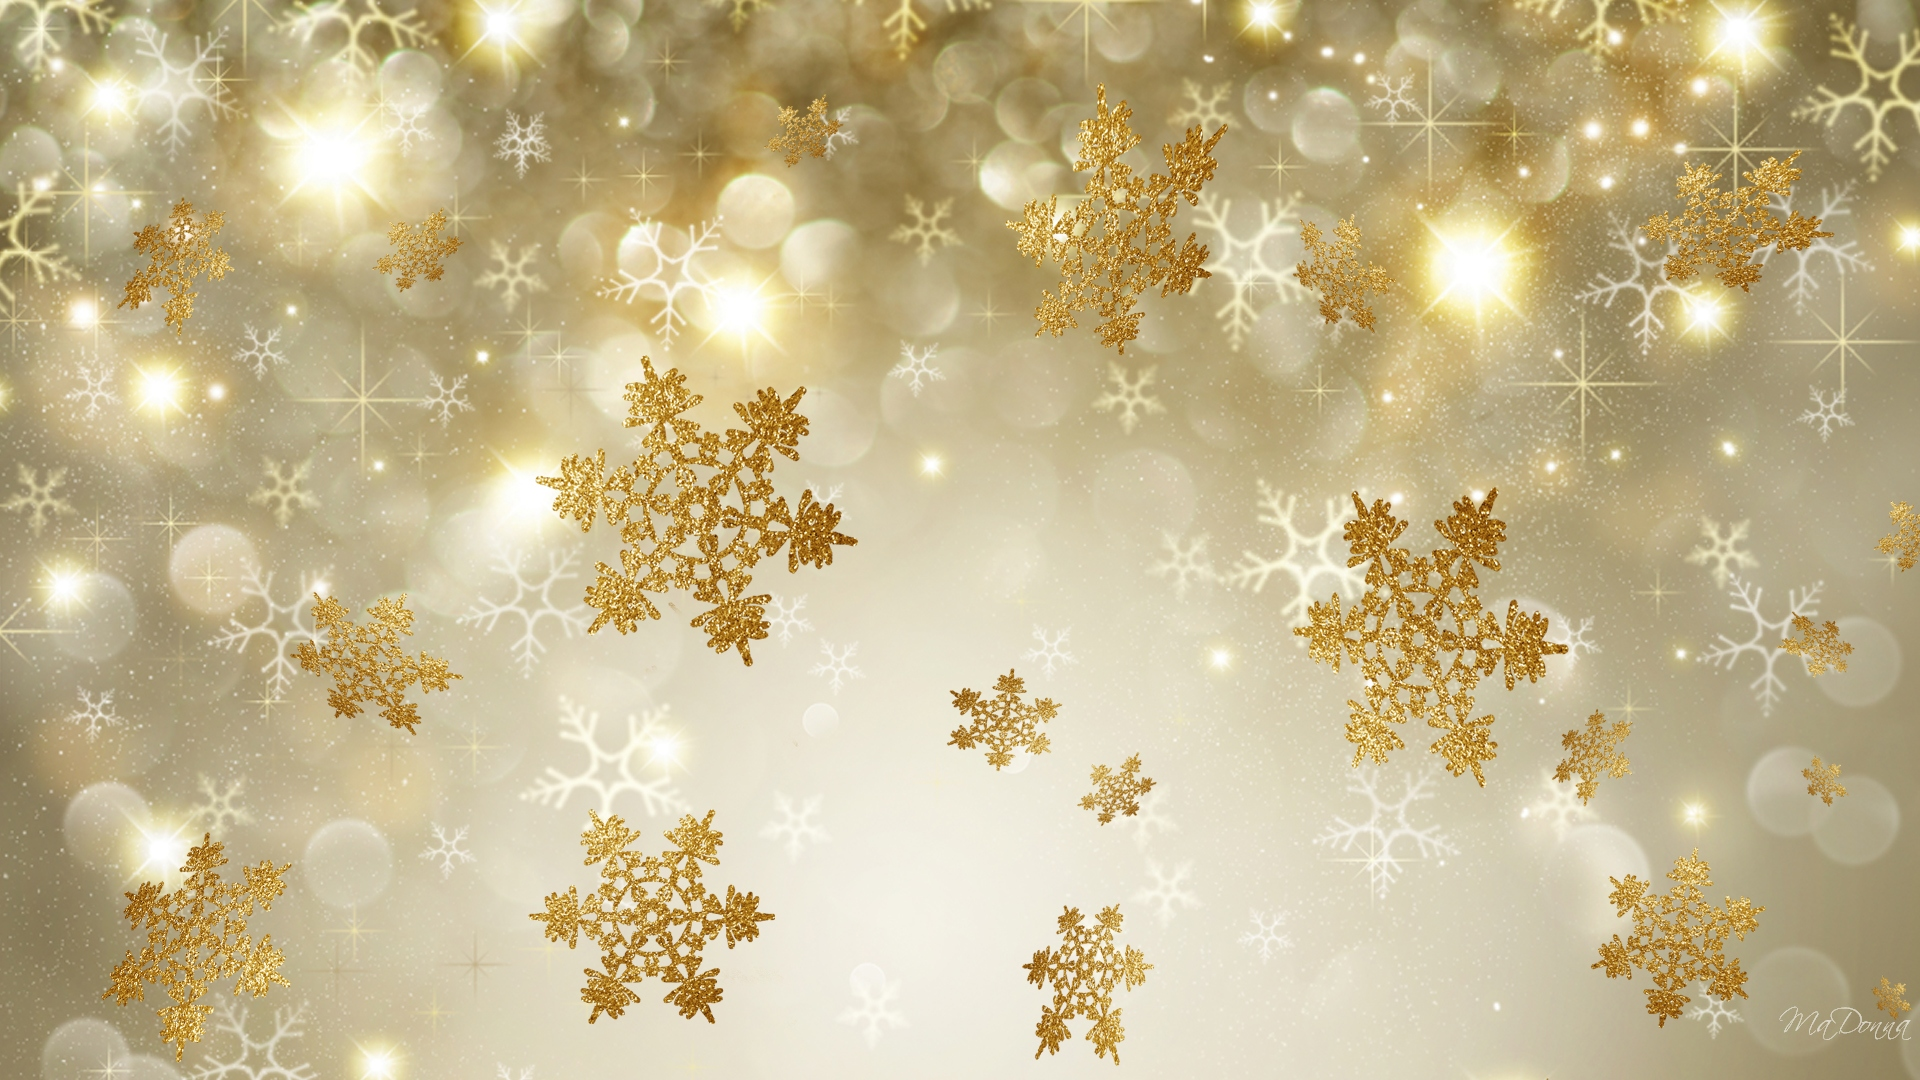 1080x1920 Hd Girl Wallpaper Golden Snowflakes Hd Wallpaper Background Image